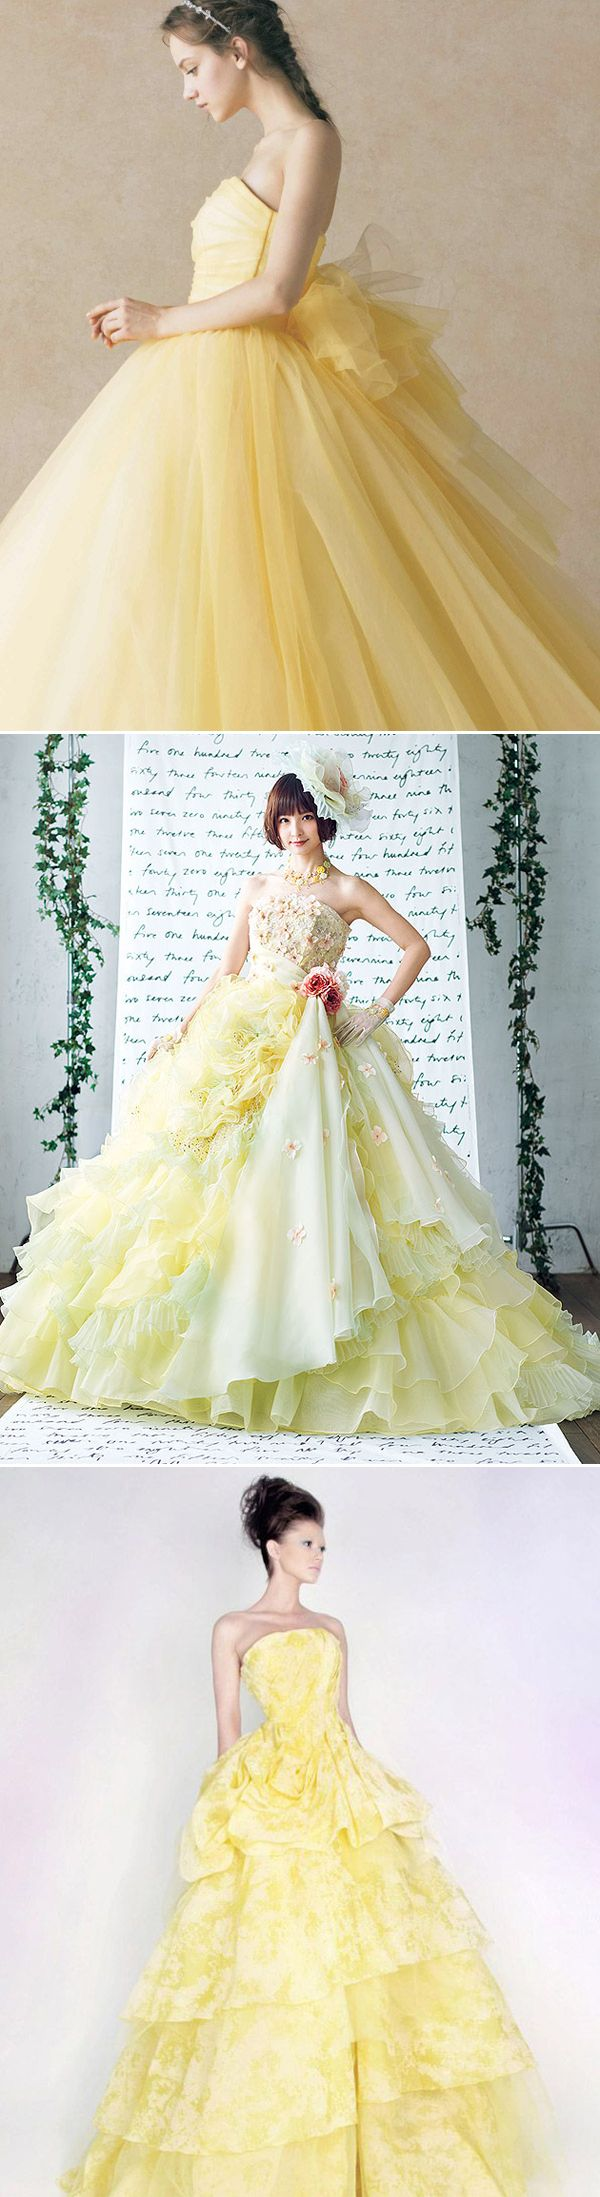 Just A Little Hint Of Pastel Color Takes The Romance Level Up Sweet Feminine And Dreamy Wedding Dress Will Make You: Romantic Pastel Wedding Dresses At Websimilar.org